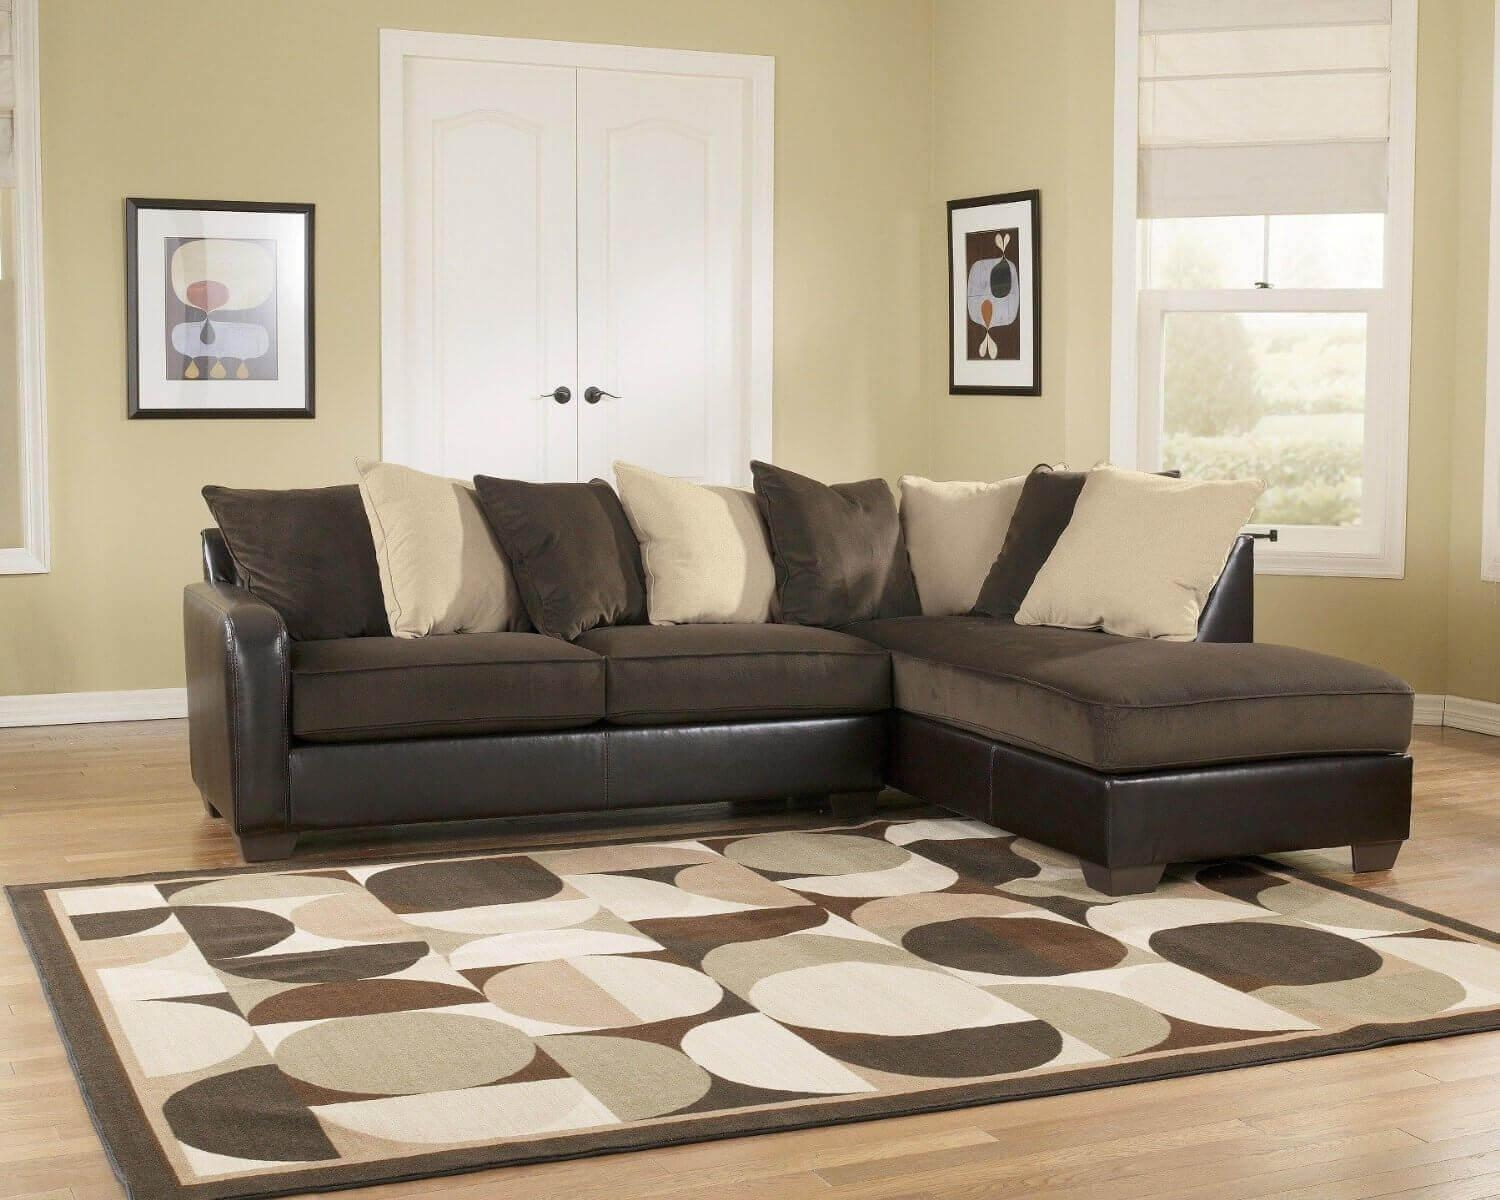 Sofas Under 500 With Regard To Individual Piece Sectional Sofas (Image 18 of 20)